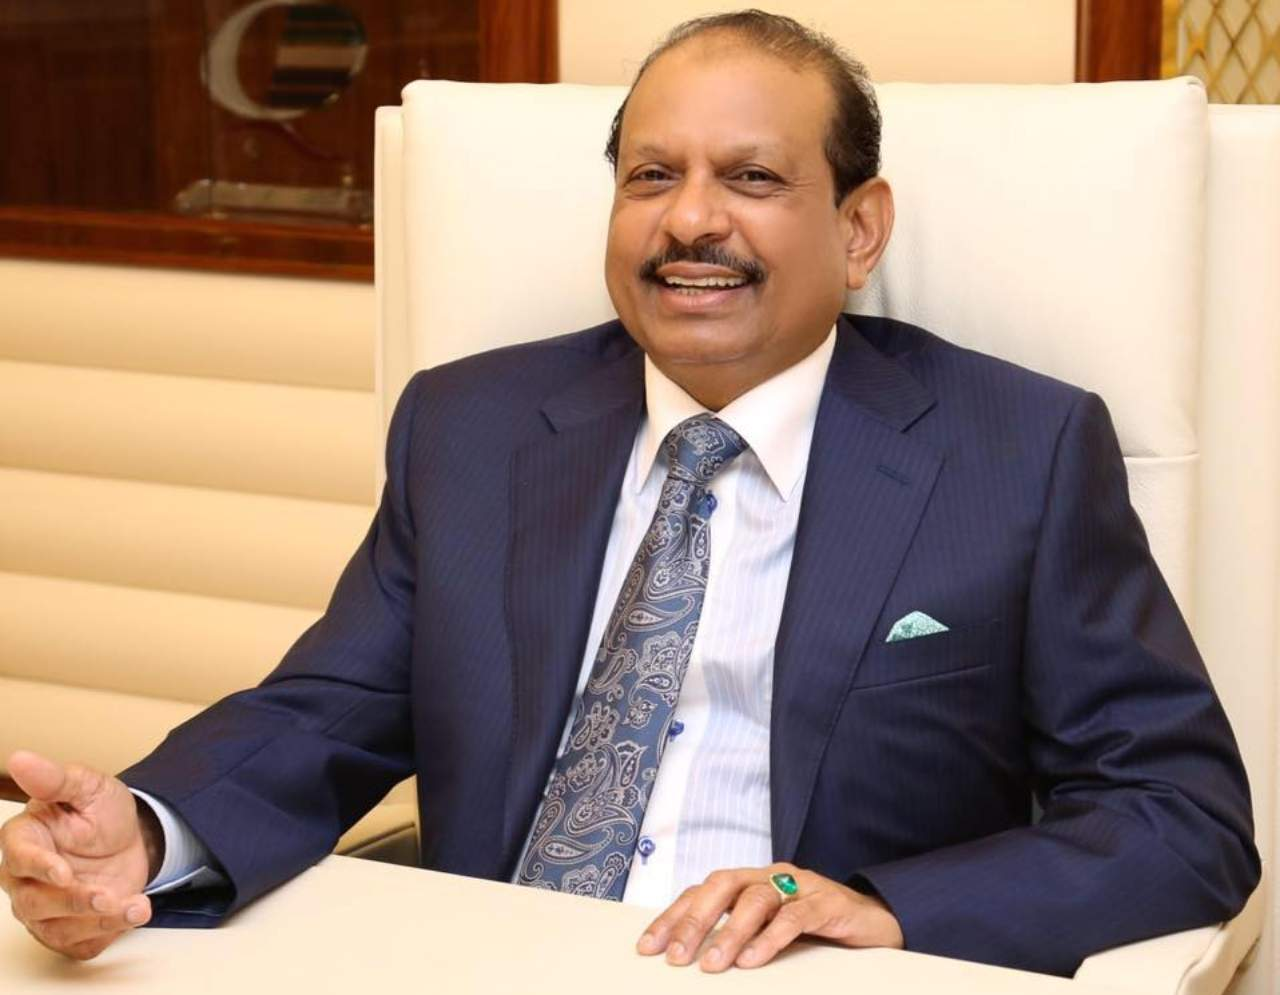 5. Yusuff Ali MA | Chairman and Managing Director, LuLu Group | Net Worth: $4.7 billion | Donation: Rs 70 crore for disaster relief (Image: Facebook)